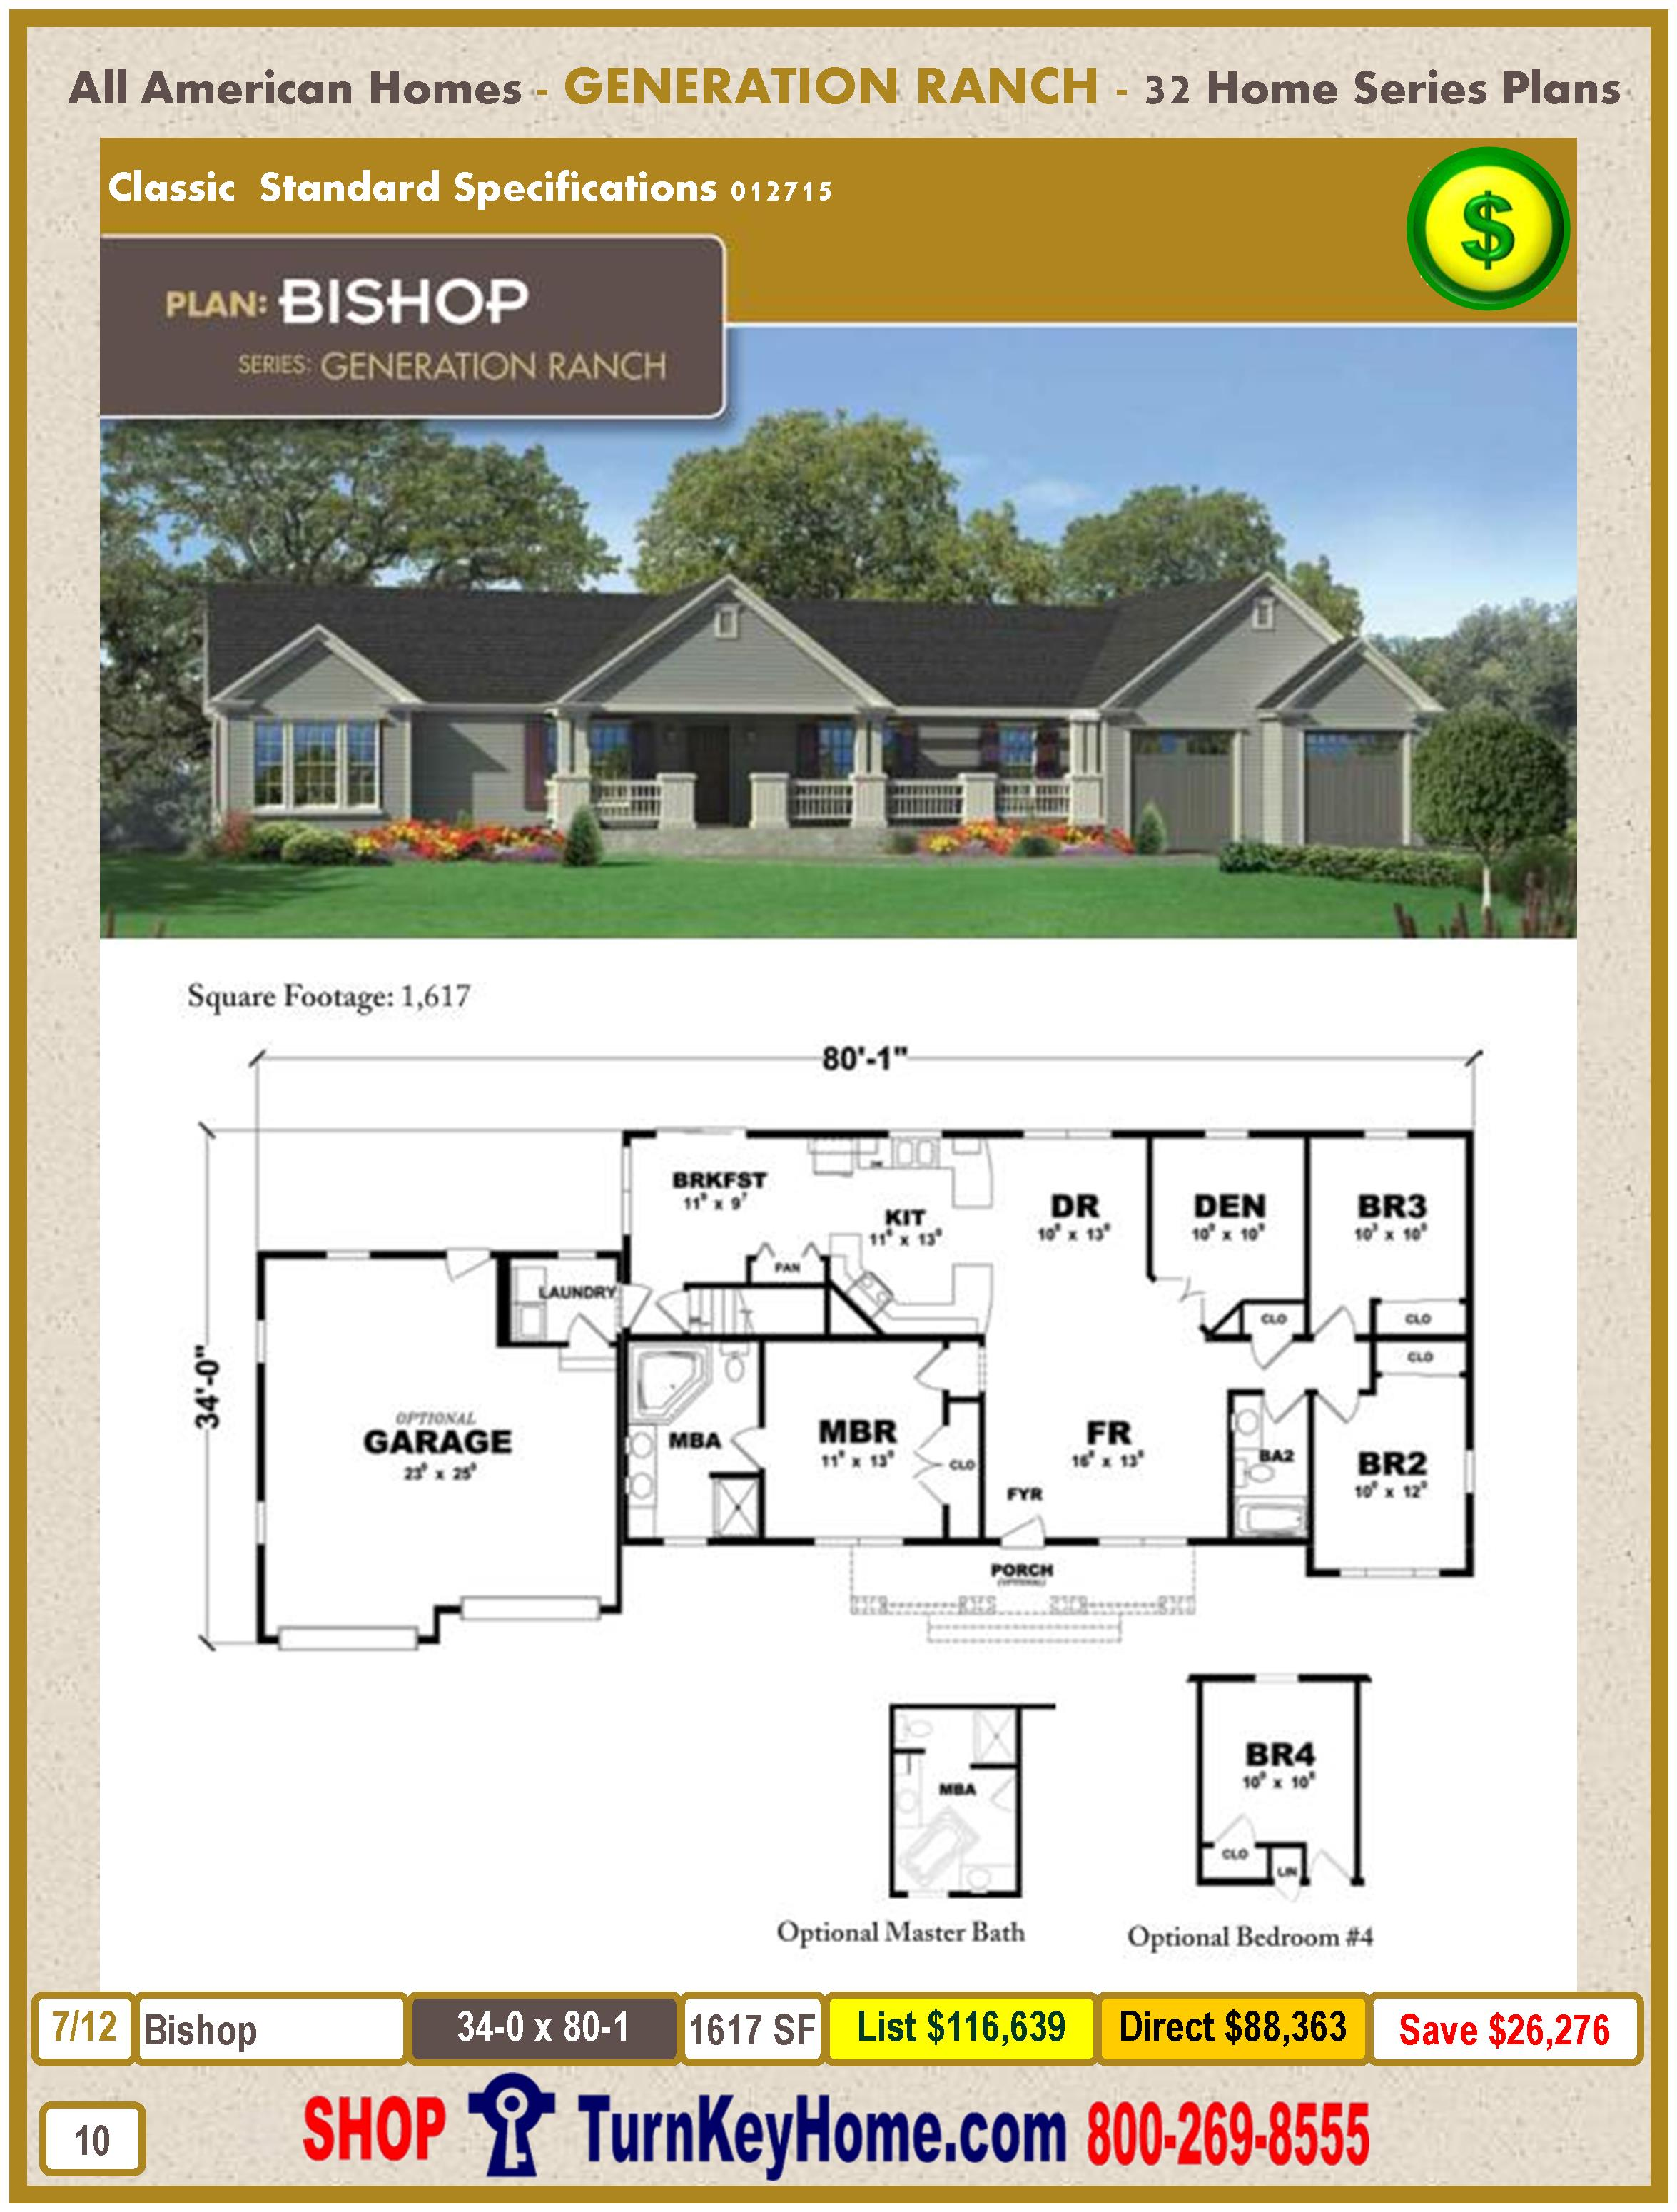 Modular.All.American.Homes.Generation.Ranch.Home.Series.Catalog.Page.10.Bishop.Direct.Price.021415